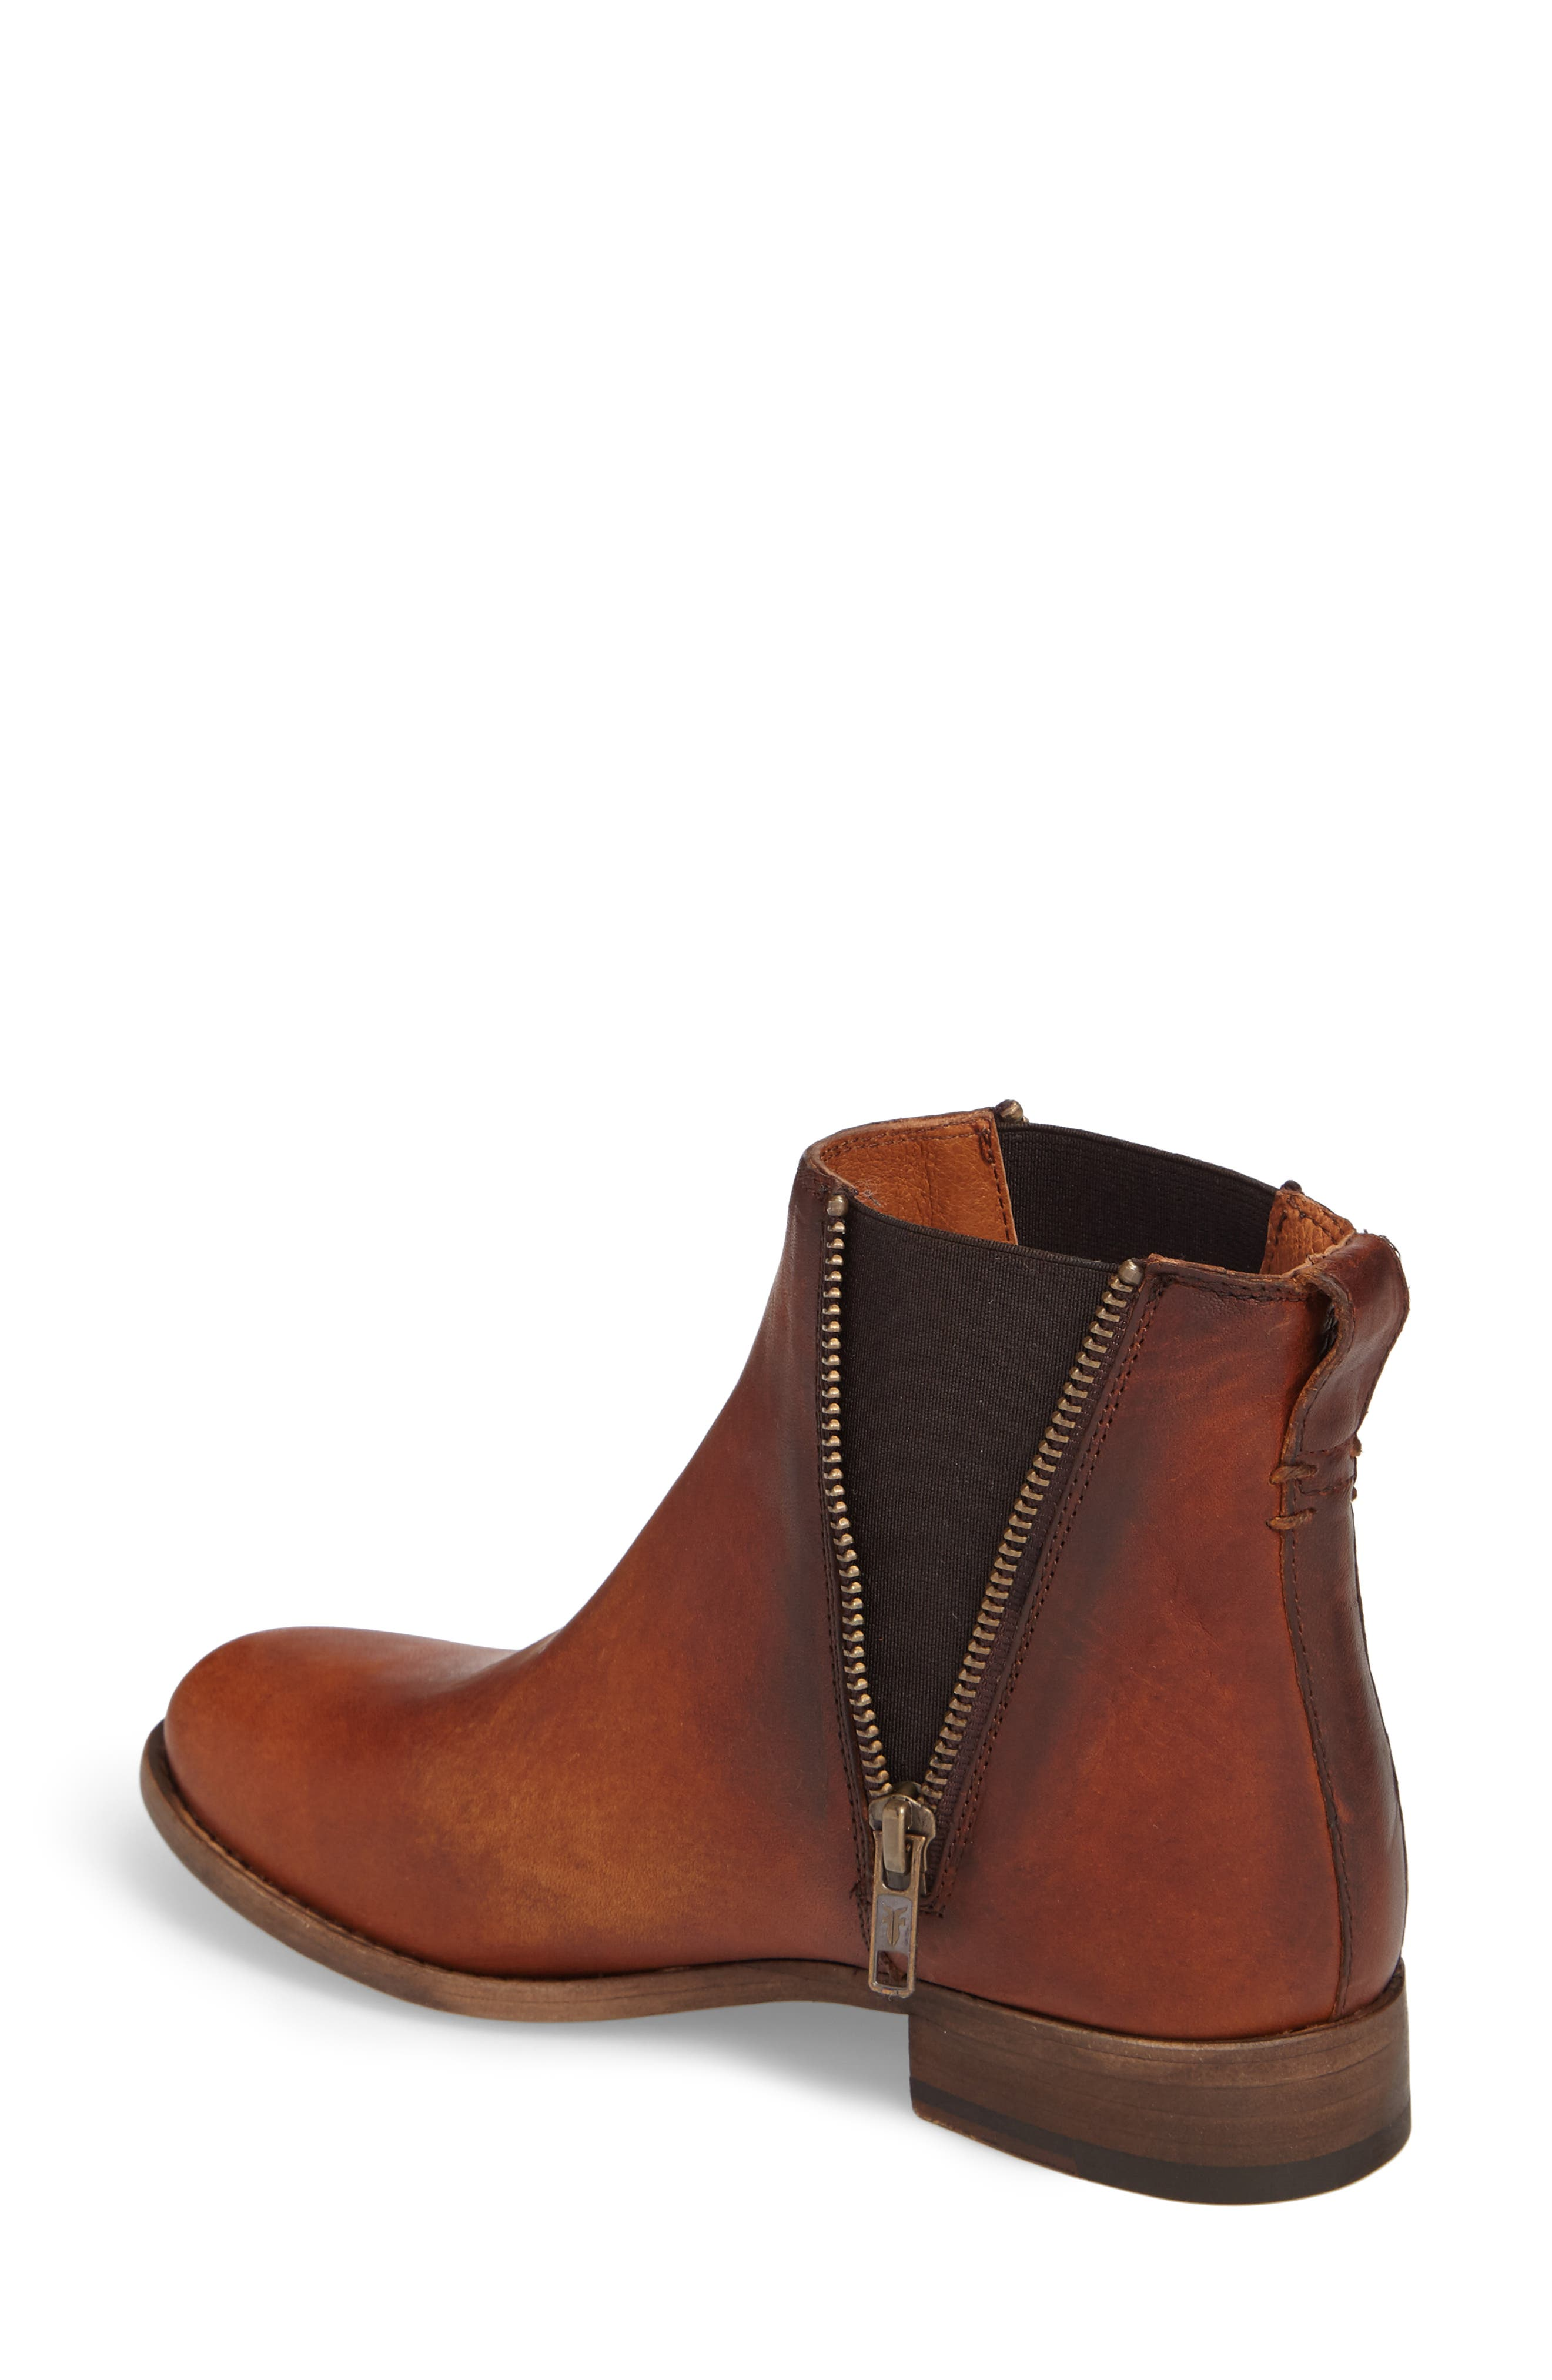 Carly Chelsea Boot,                             Alternate thumbnail 2, color,                             Cognac Leather